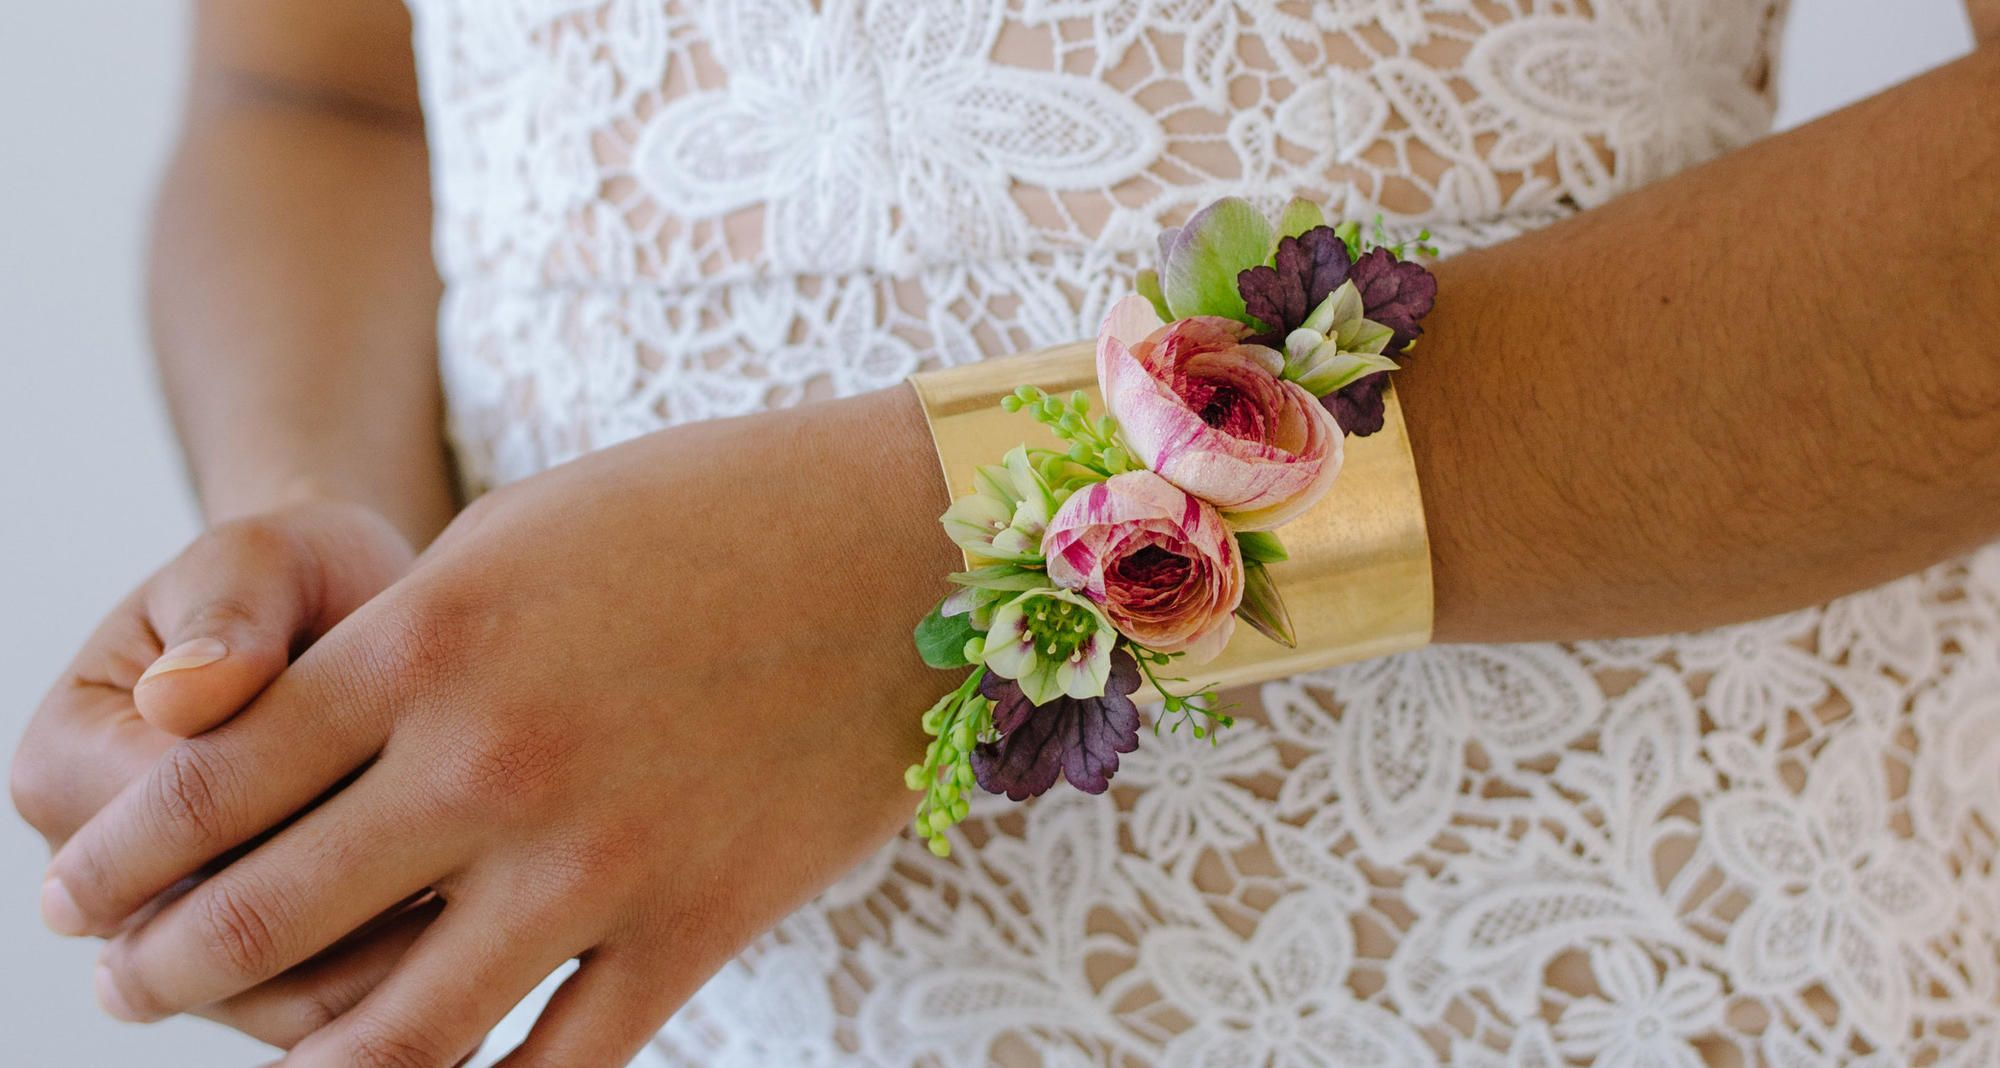 Learn To Love Living Jewelry The Techniques In This Tutorial Will Allow You To Design Gorgeous Living Succulent Jewelry D Floral Design Floral Wedding Pins